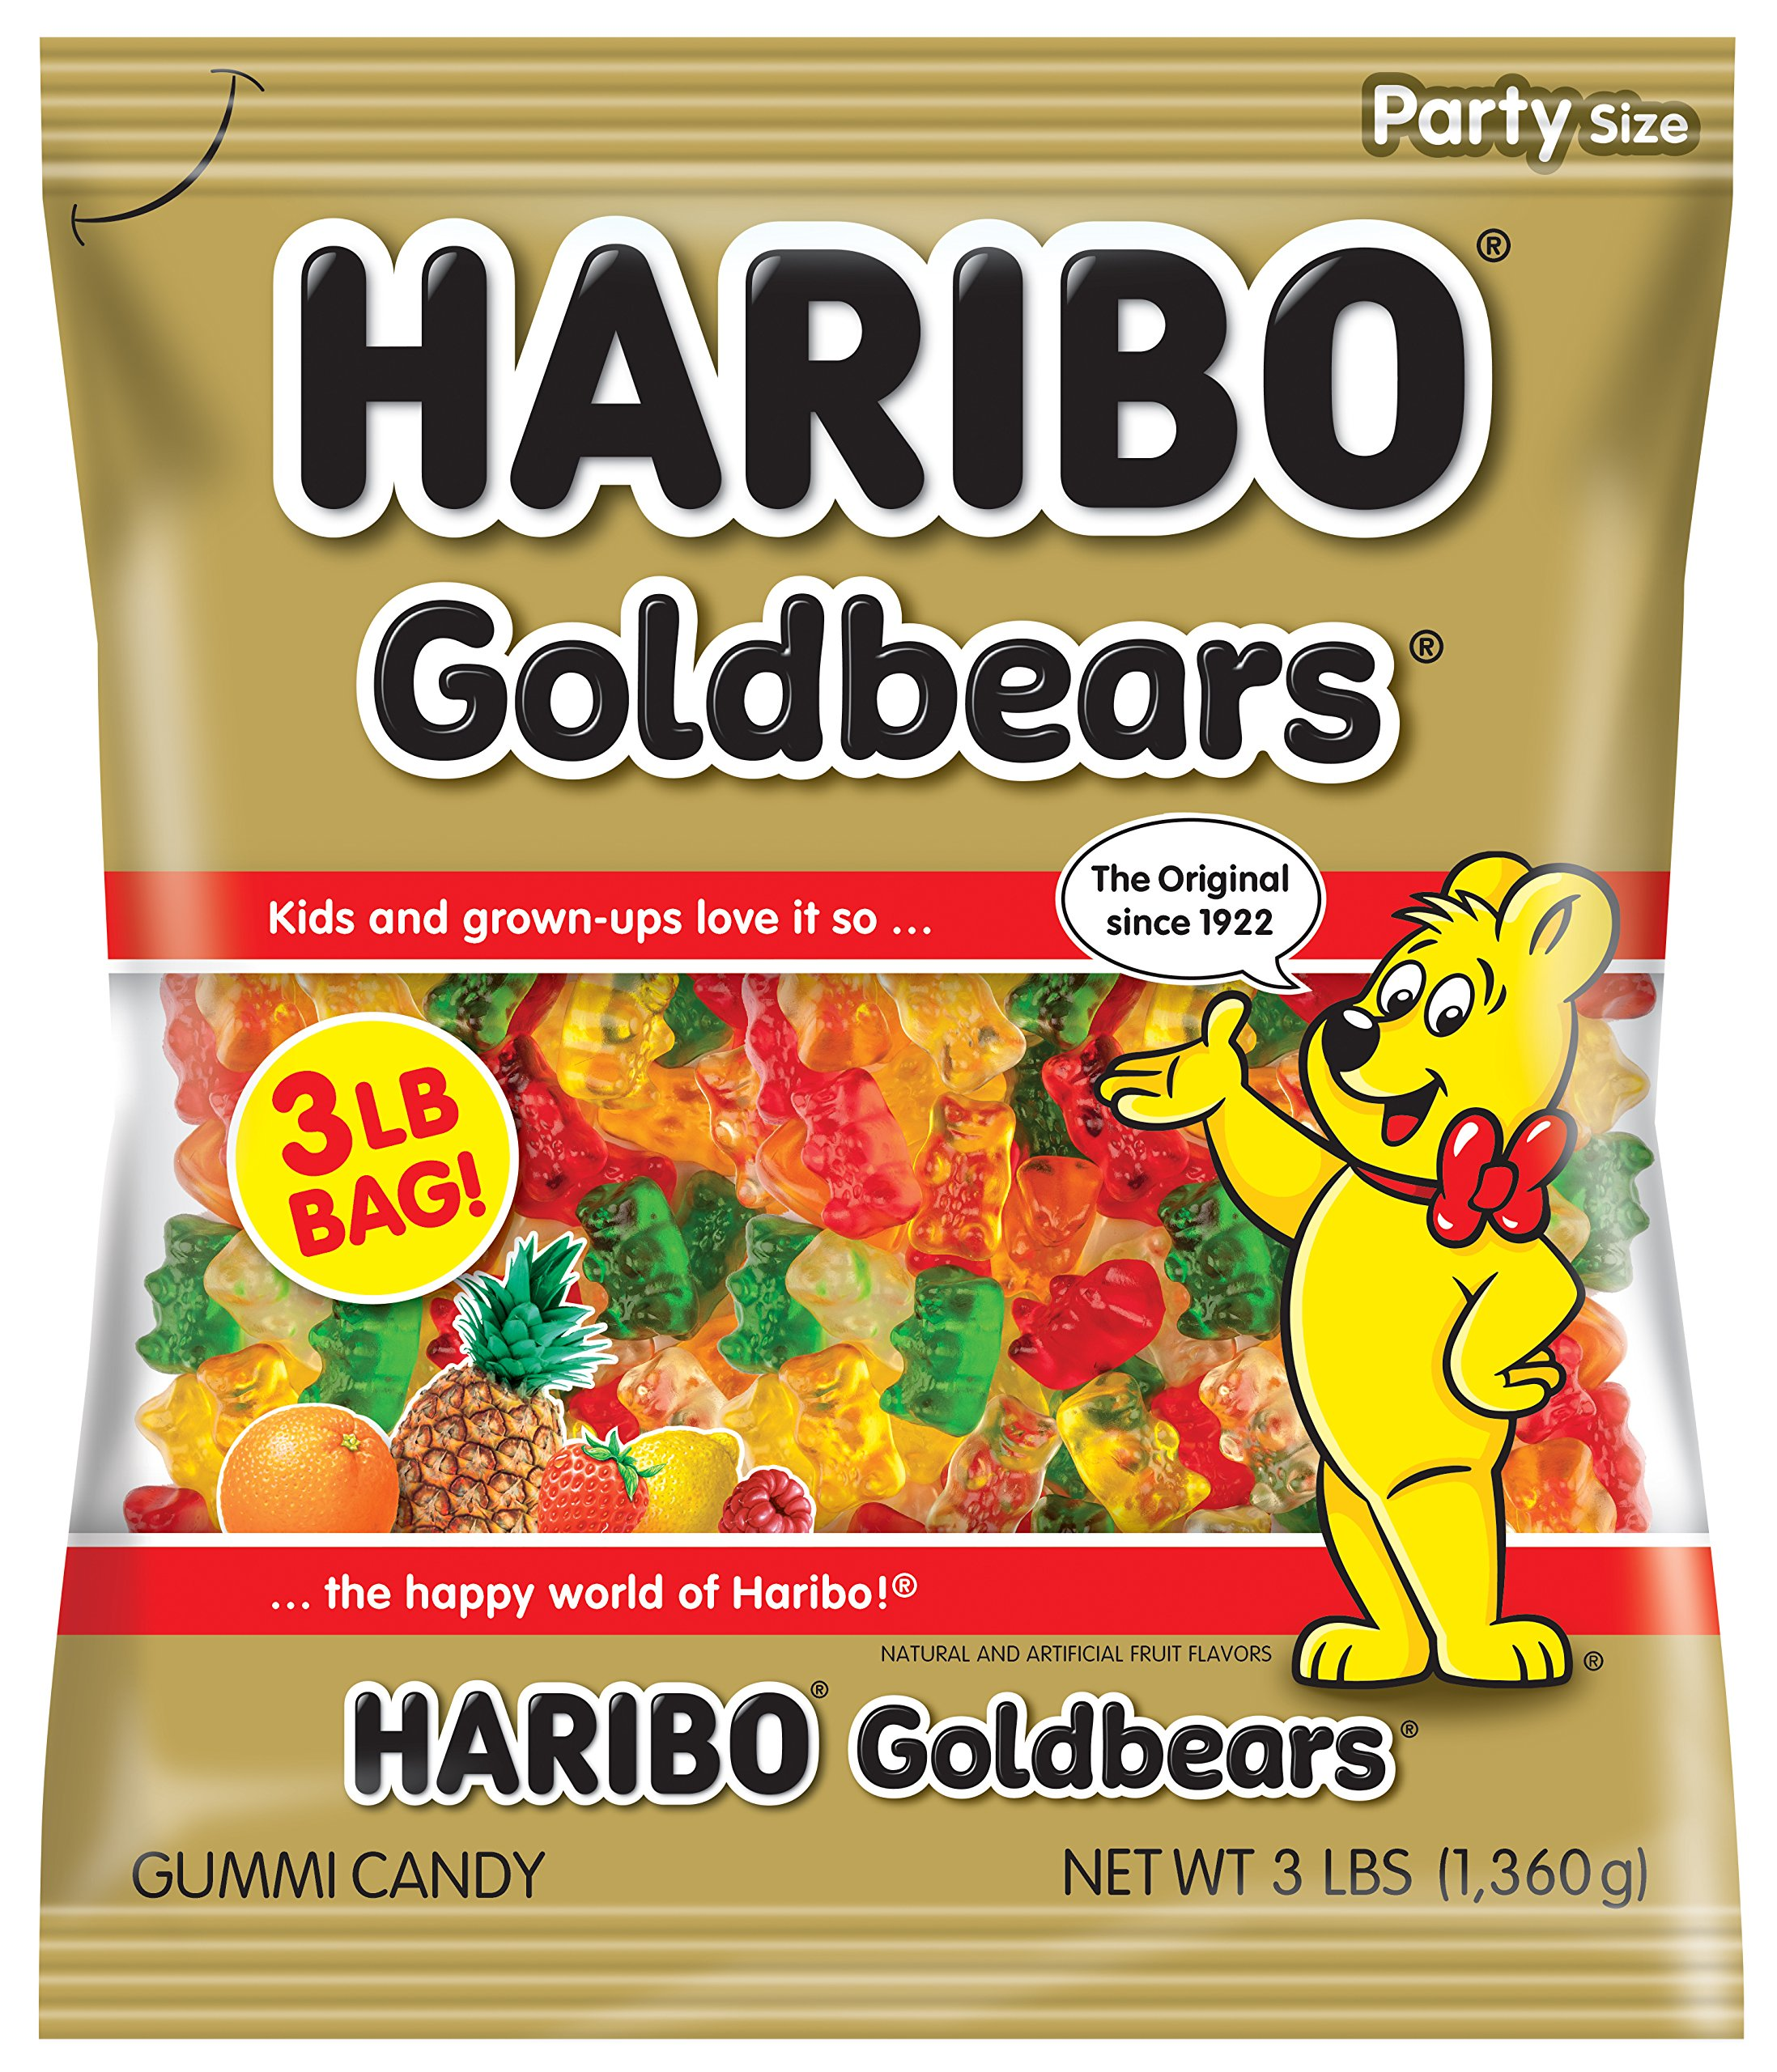 Haribo Gummi Candy, Goldbears Gummy Candy, 48 Ounce Bag (Pack of 4)